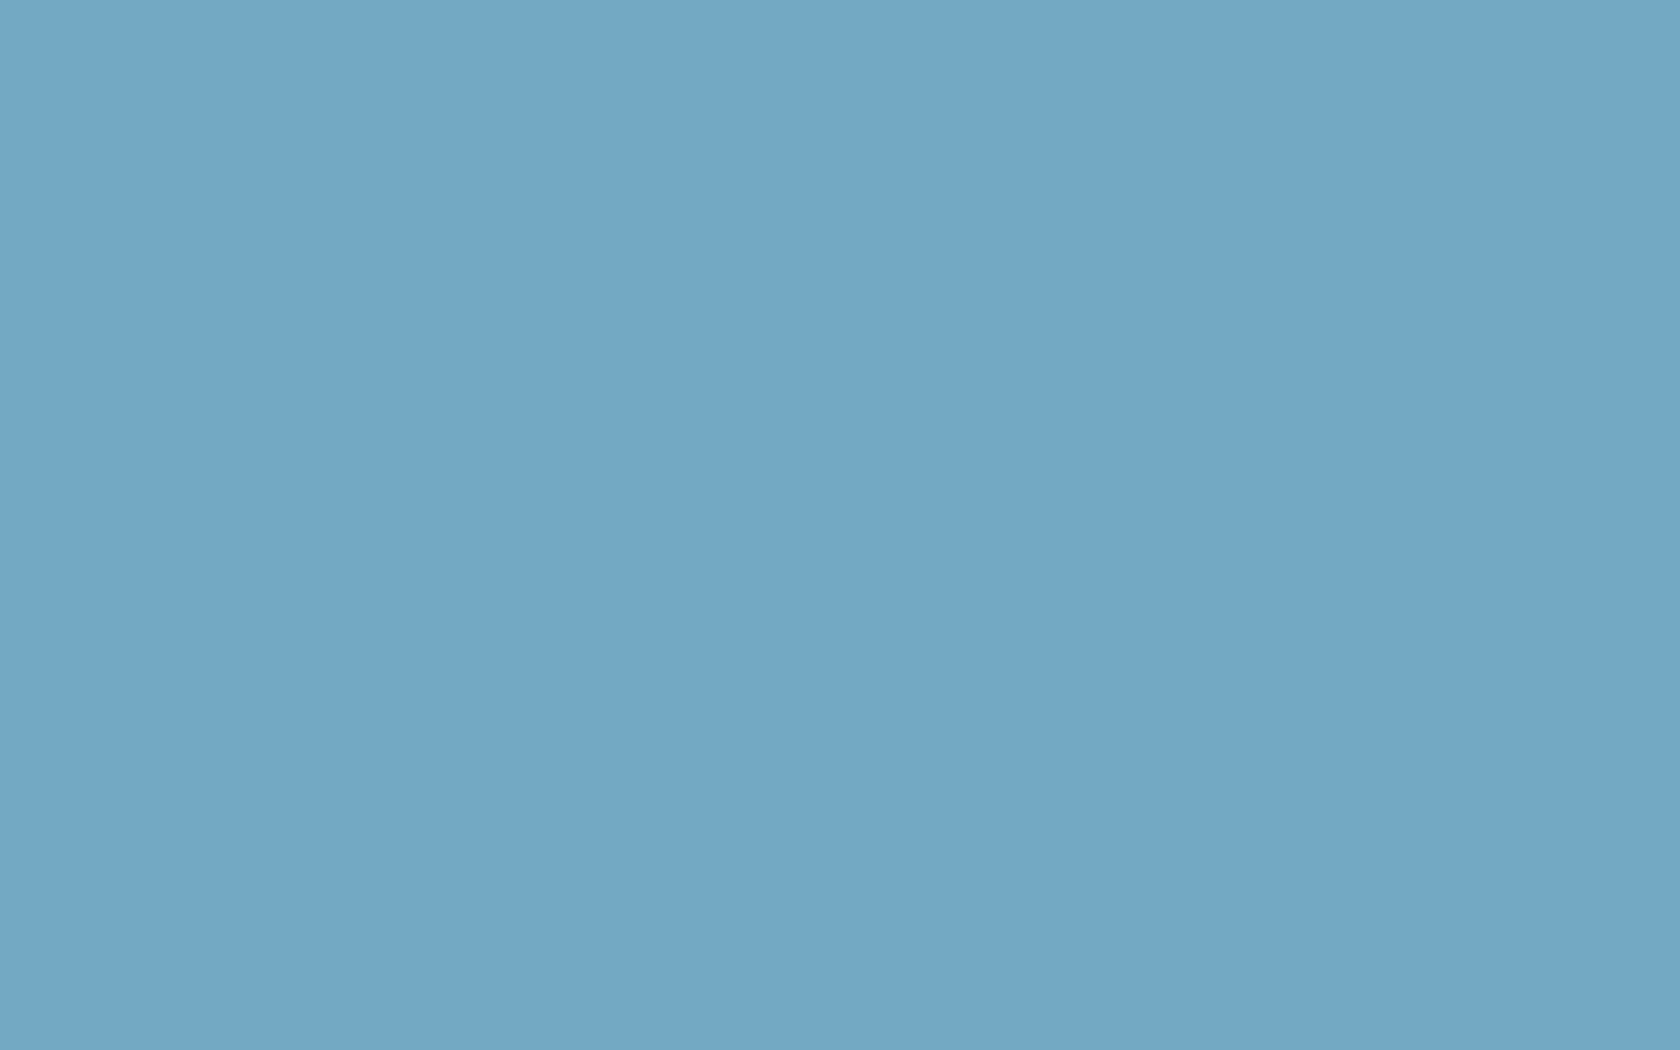 1680x1050 Moonstone Blue Solid Color Background